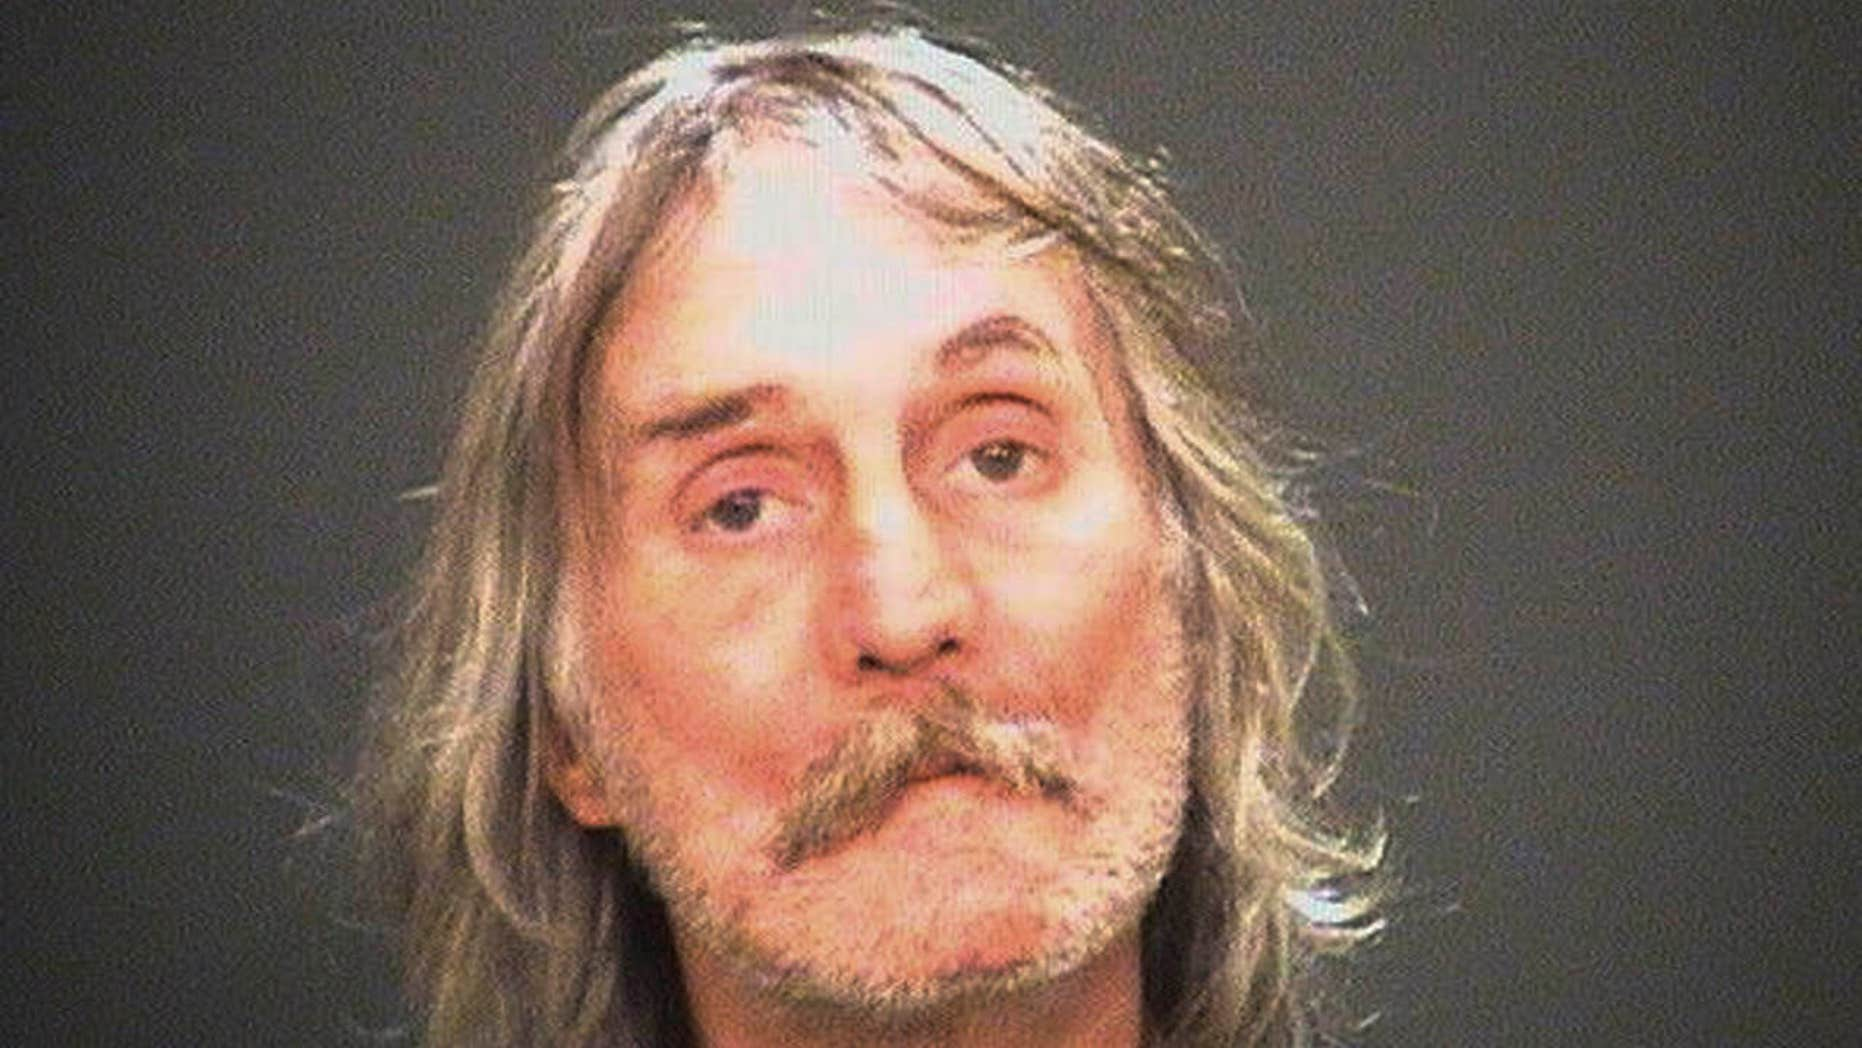 This undated photo provided by the Cuyahoga County prosecutors office shows David Spaulding.